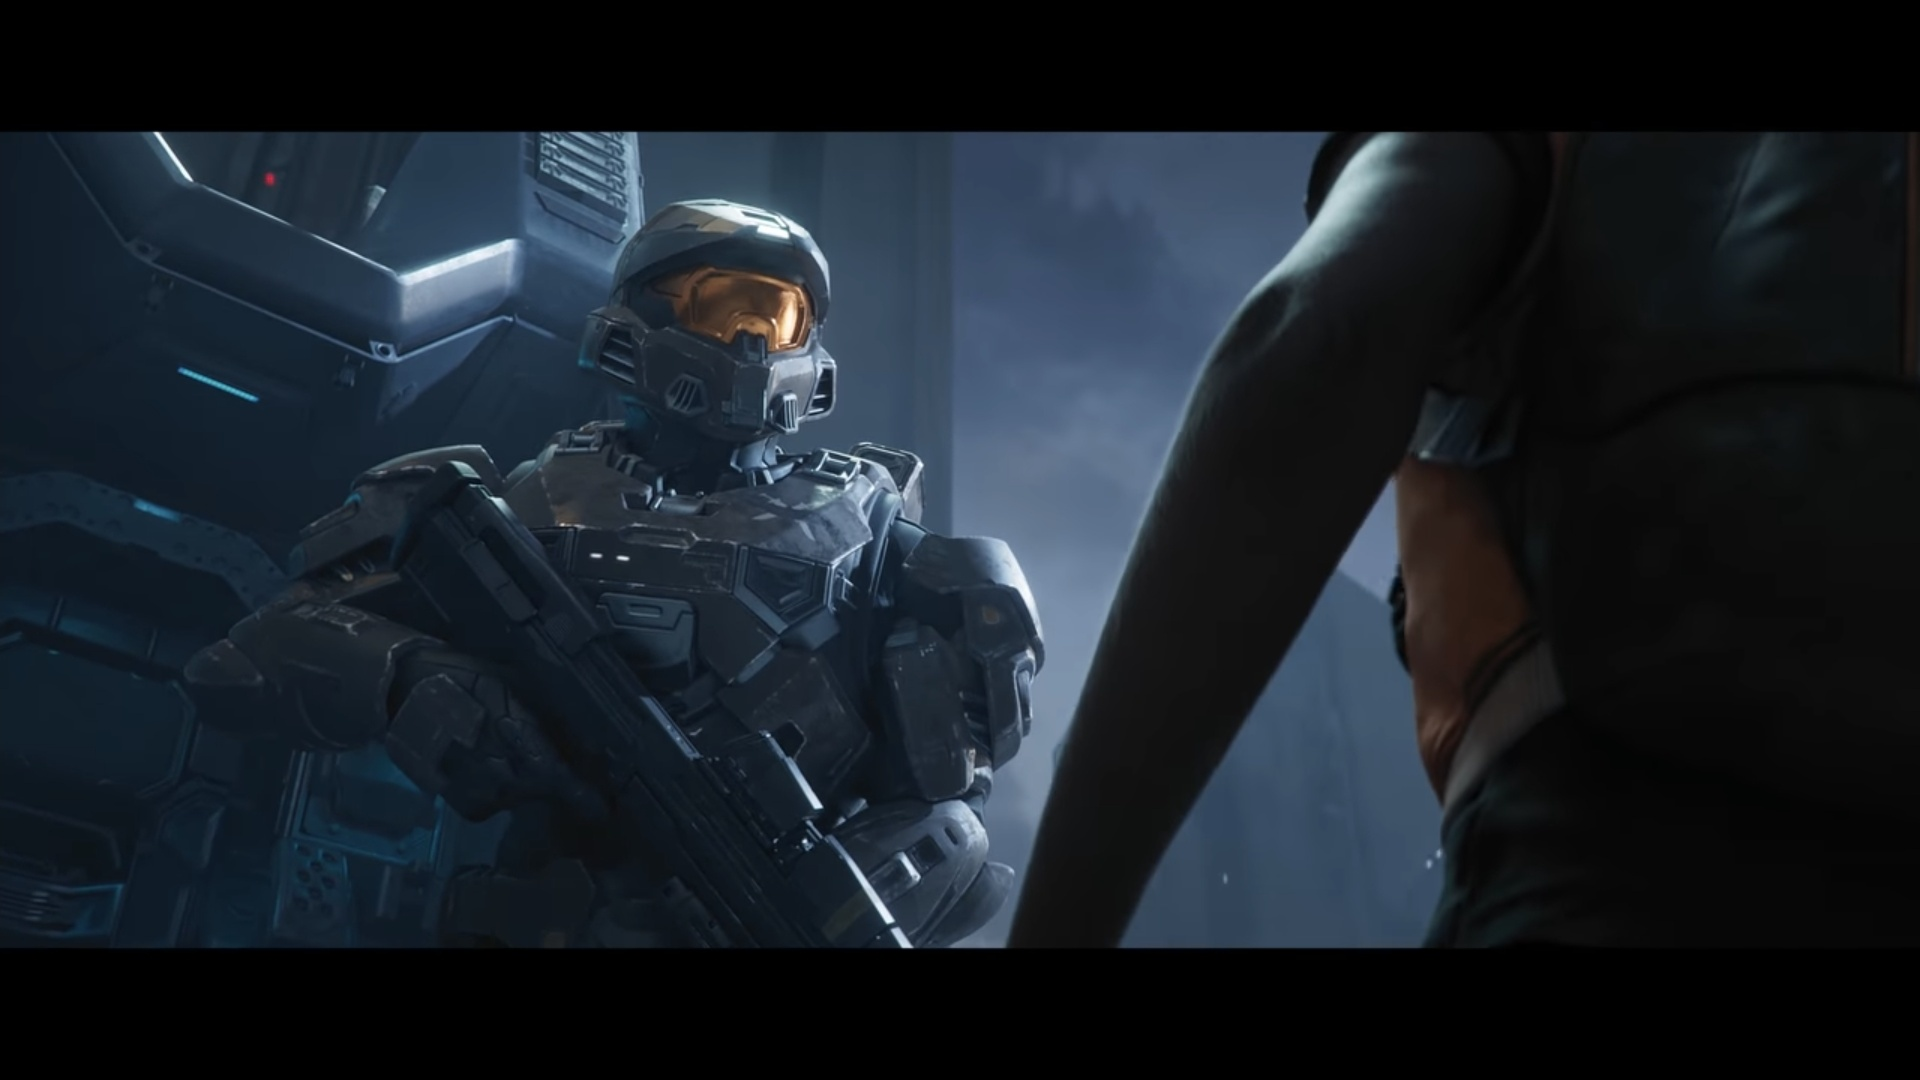 Thoughts on the Halo Infinite staggered release